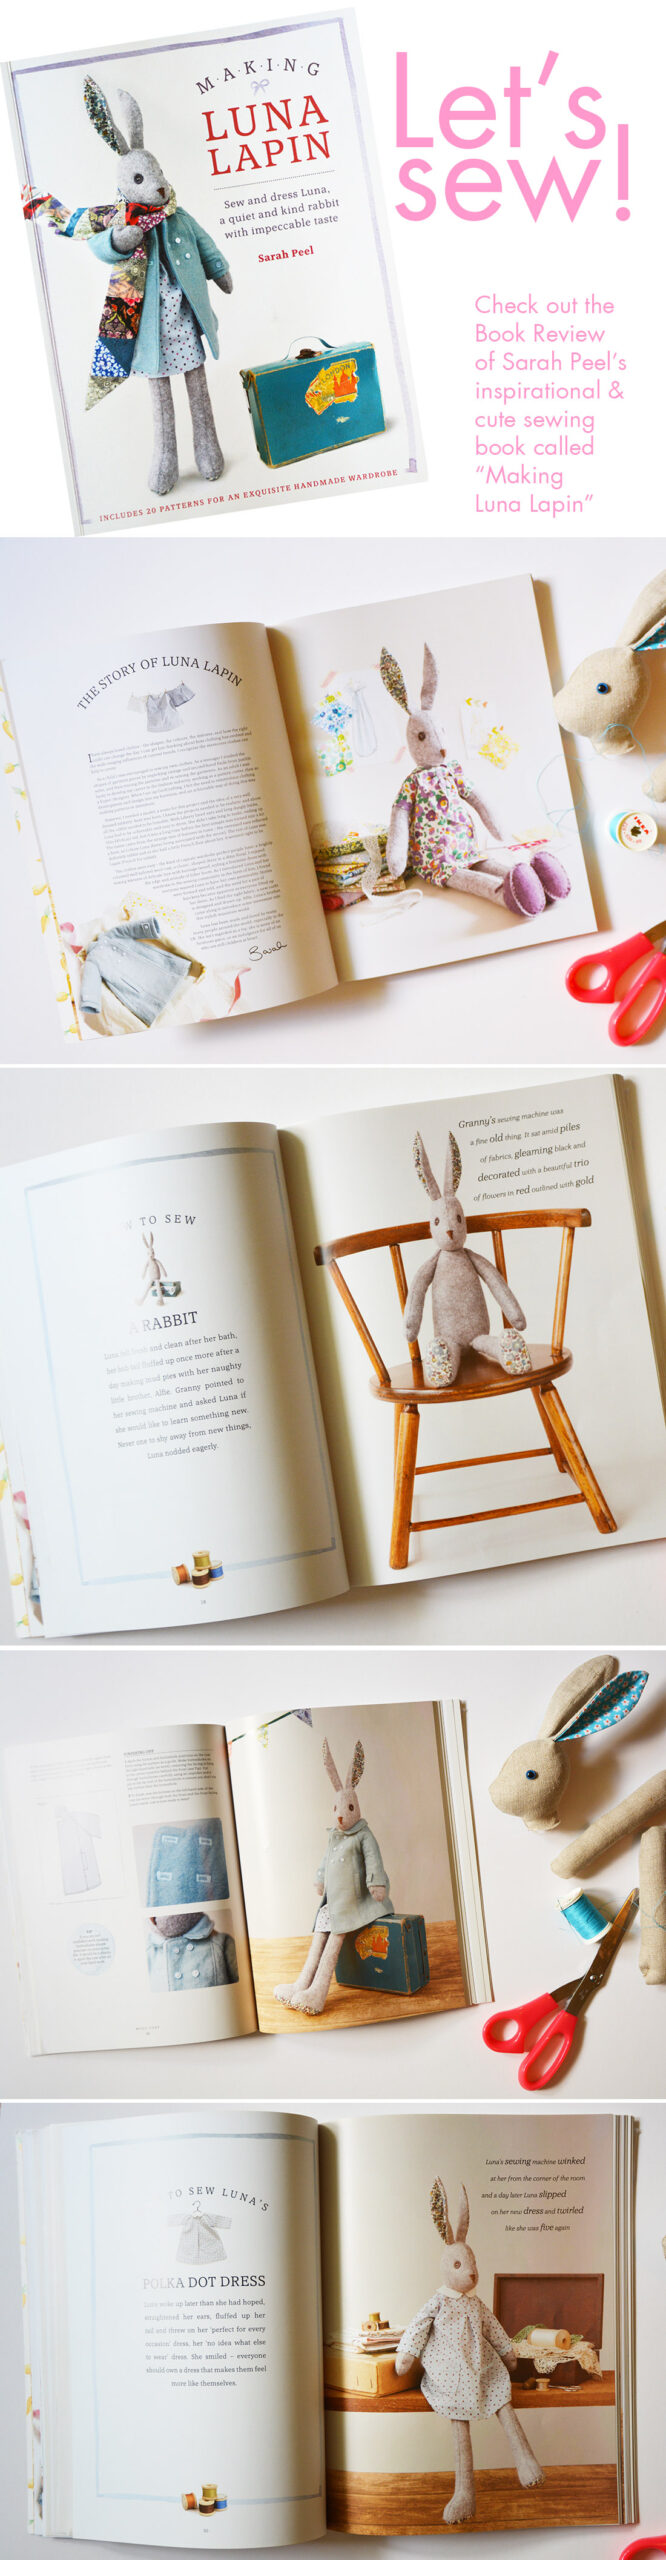 Making Luna Lapin - a craft book by Sarah Peel - review by iHanna